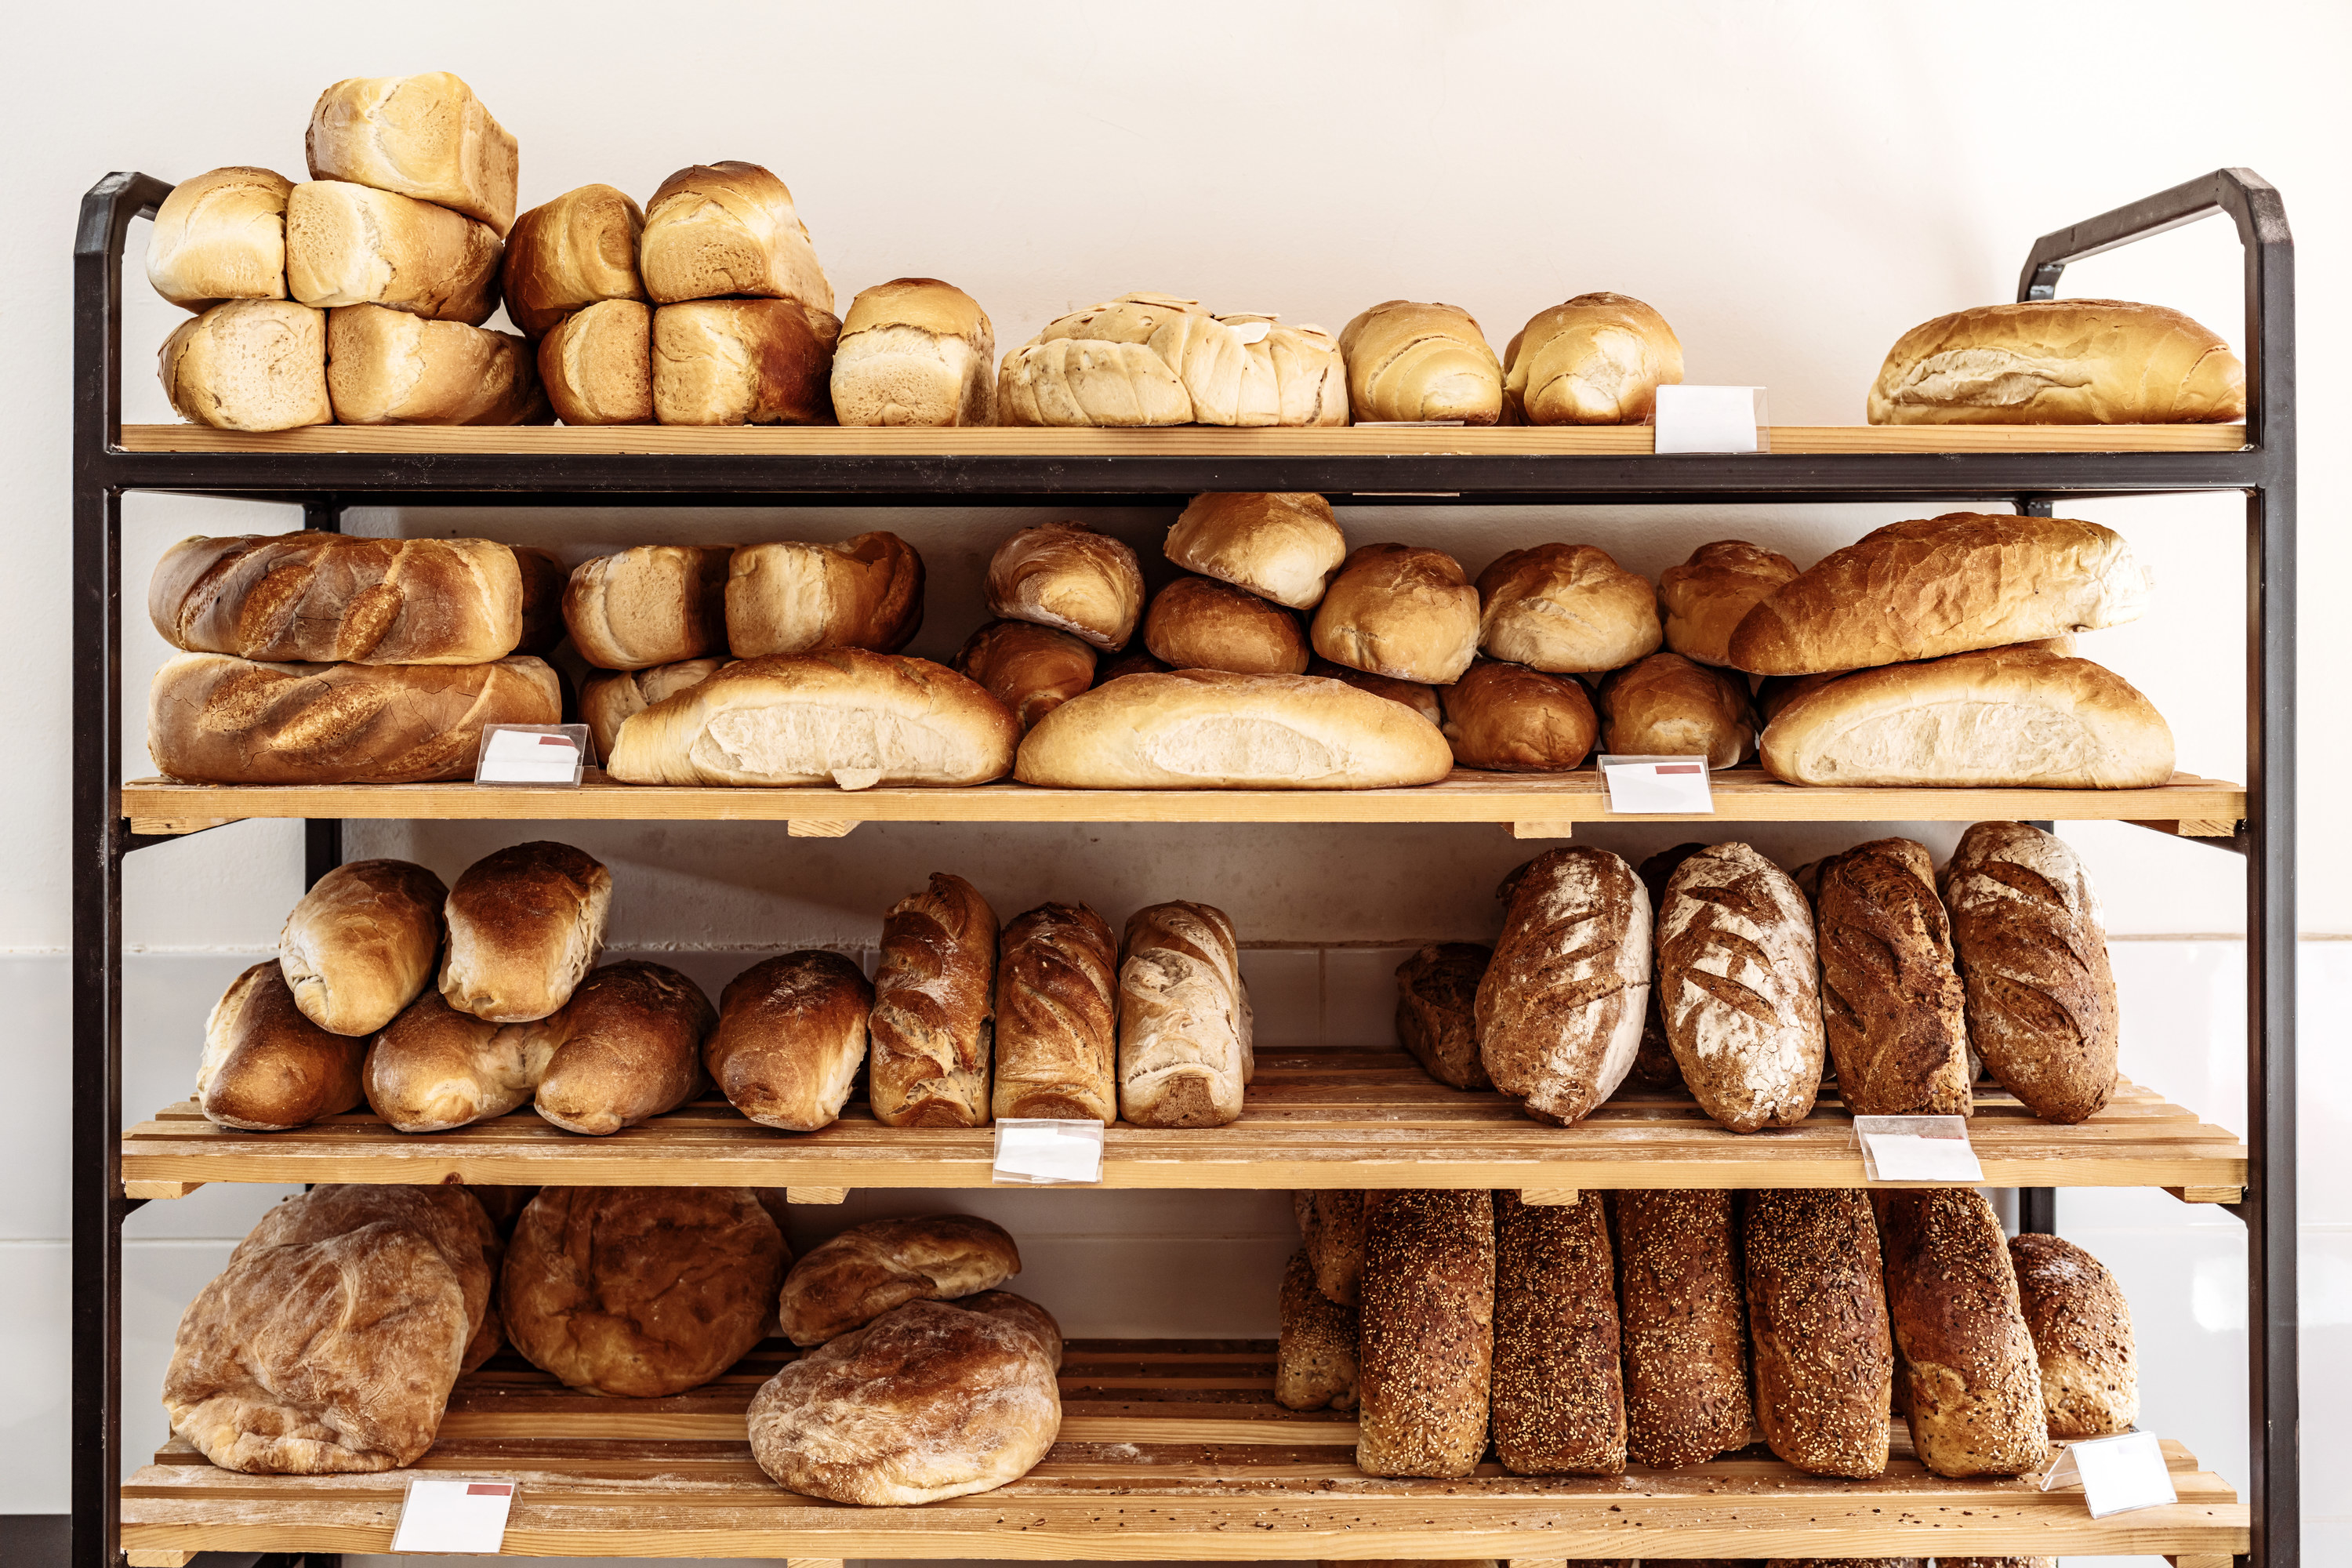 Bakery shelf lined with freshly-baked bread